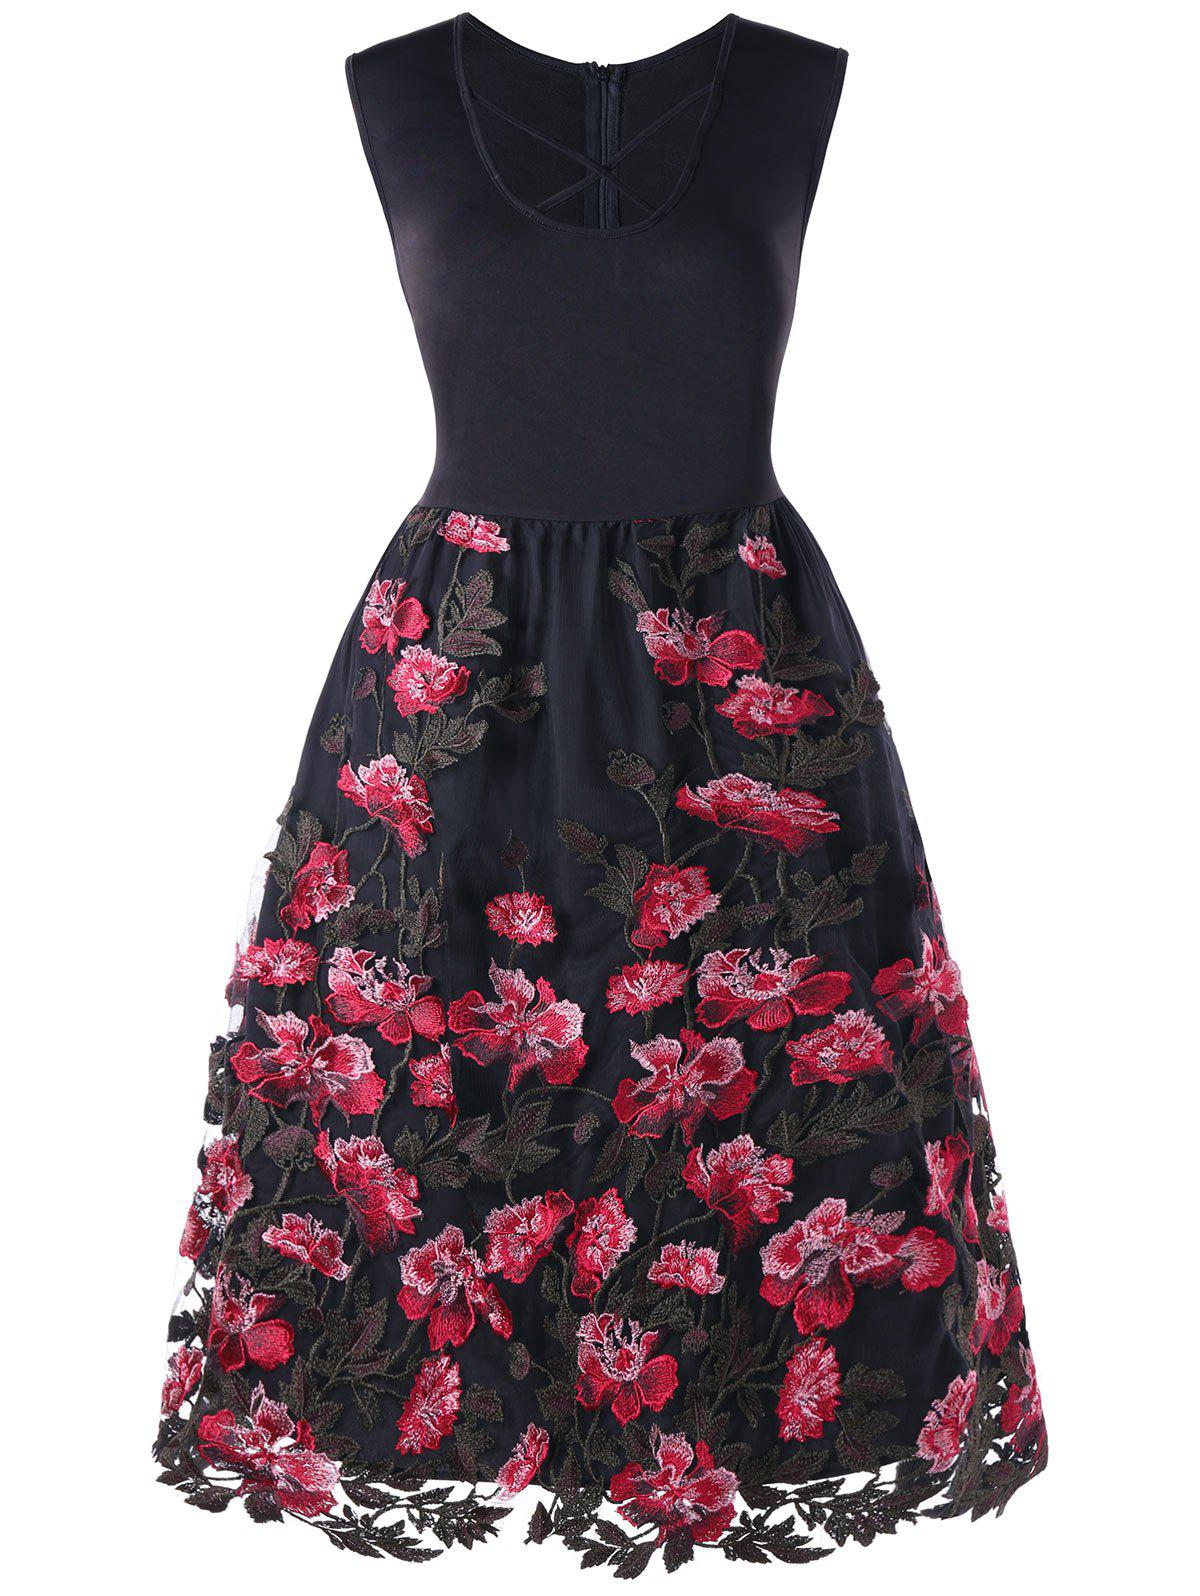 Fashion Plus Size Embroidery Appliqued Floral Swing Dress